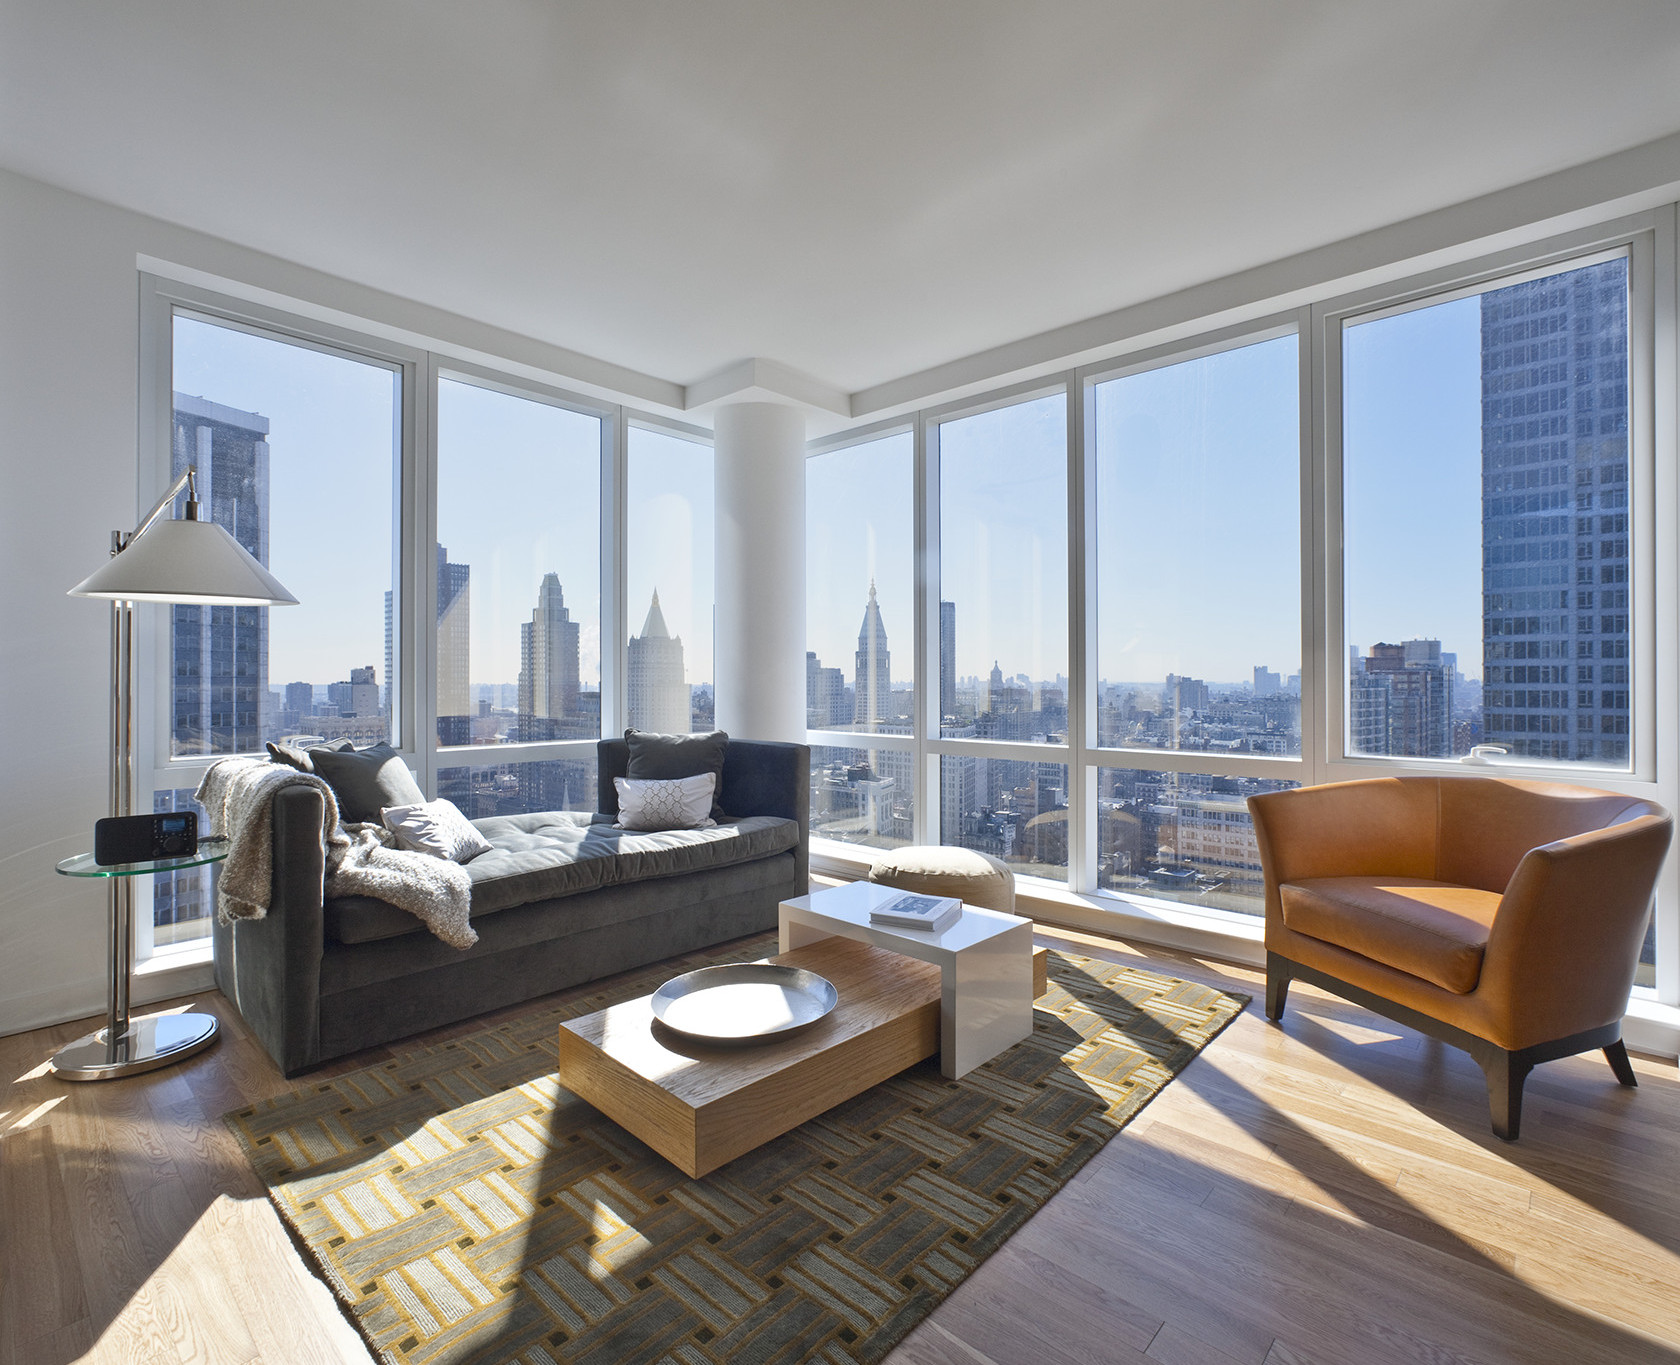 Midtown Manhattan Apartments for Rent | NYC Skyline Views